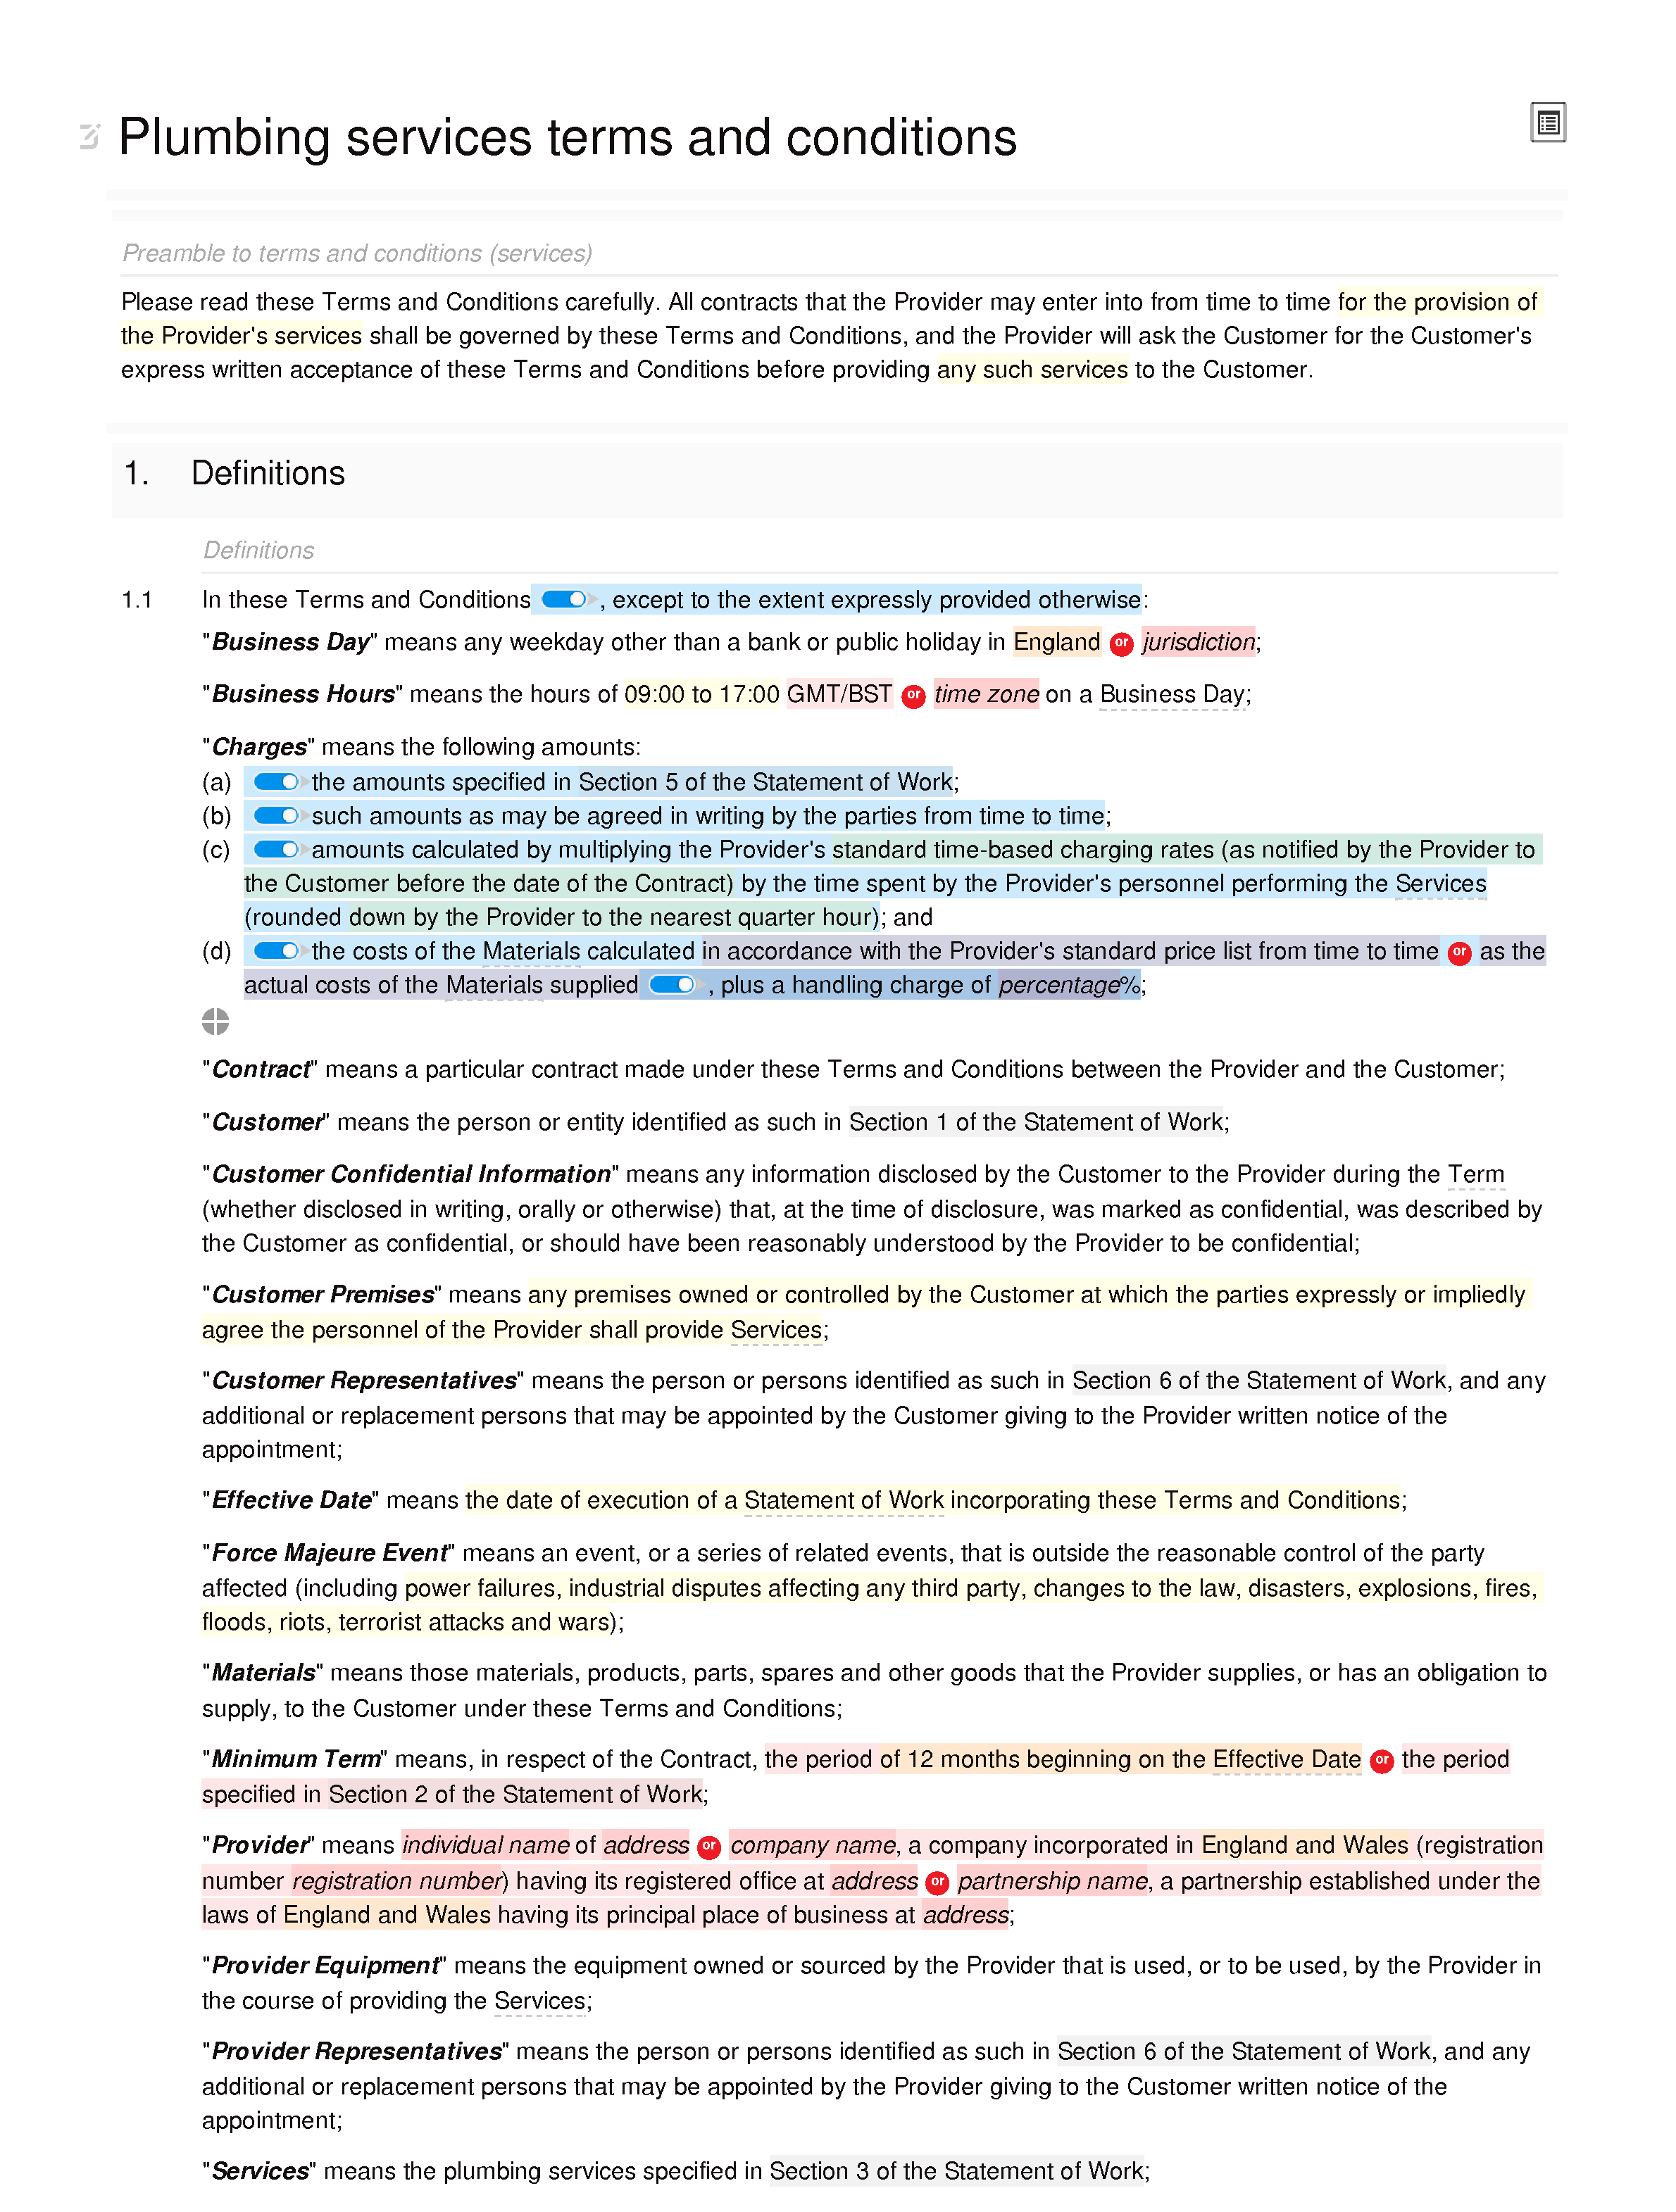 Plumbing services terms and conditions document editor preview